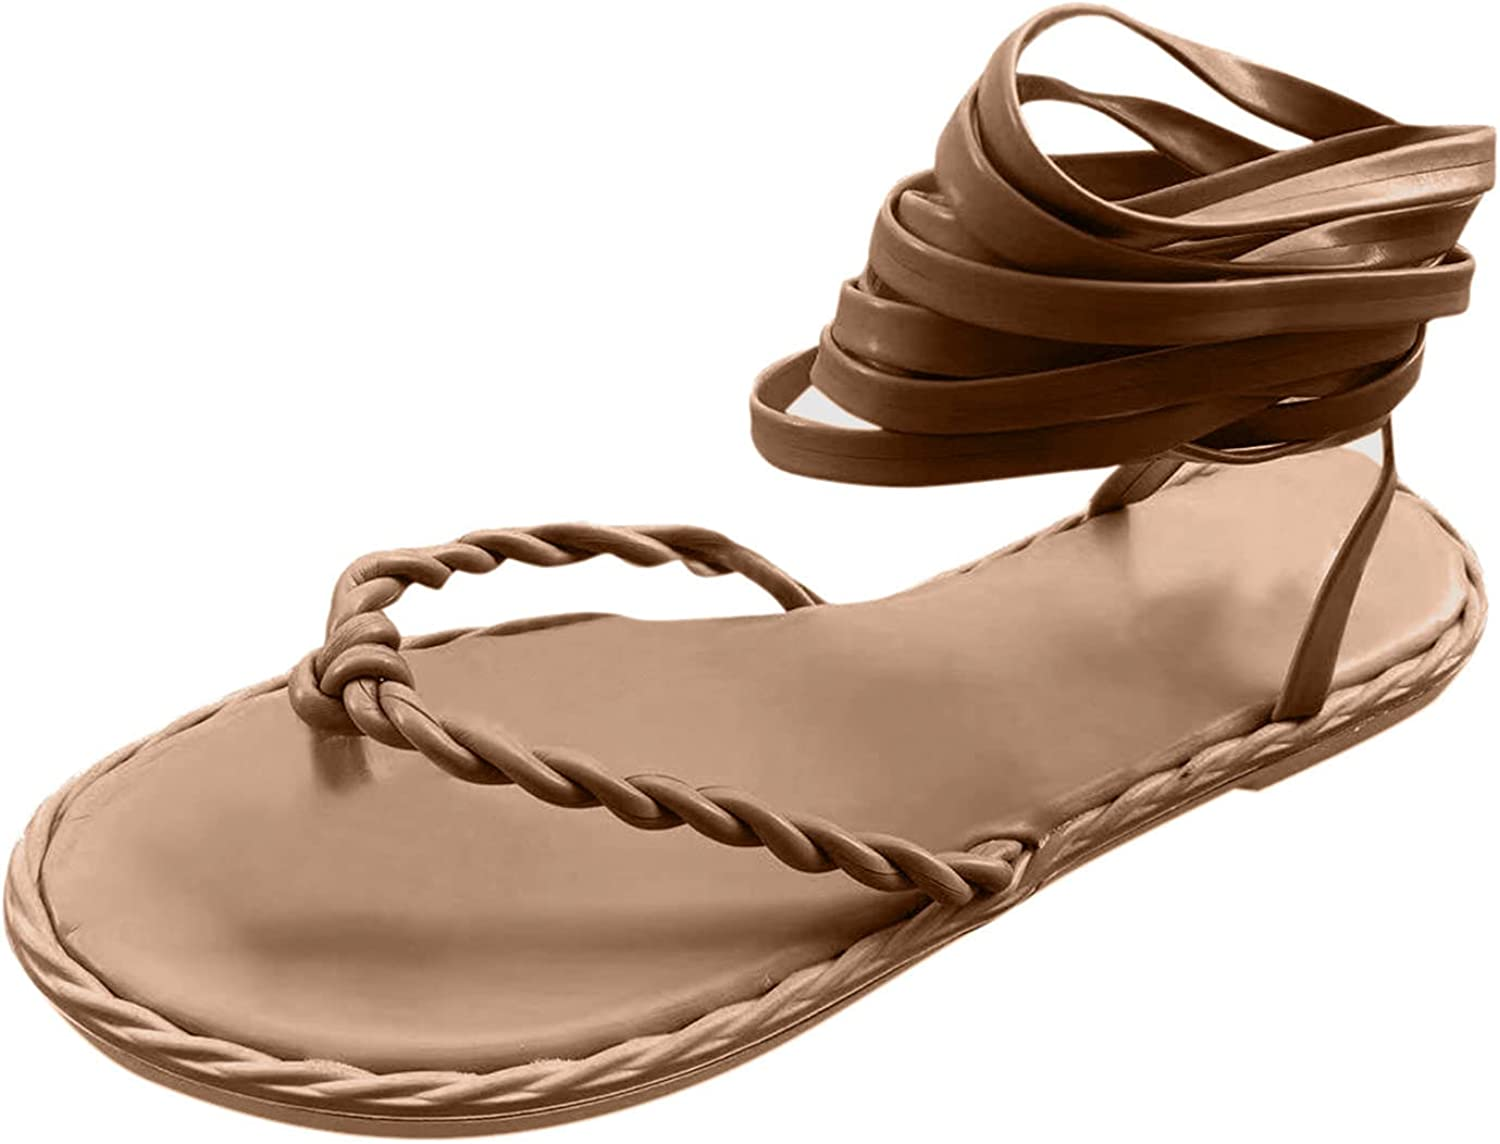 Fullwei Sandals for Women Flat New arrival Max 46% OFF Gladiator Su Casual